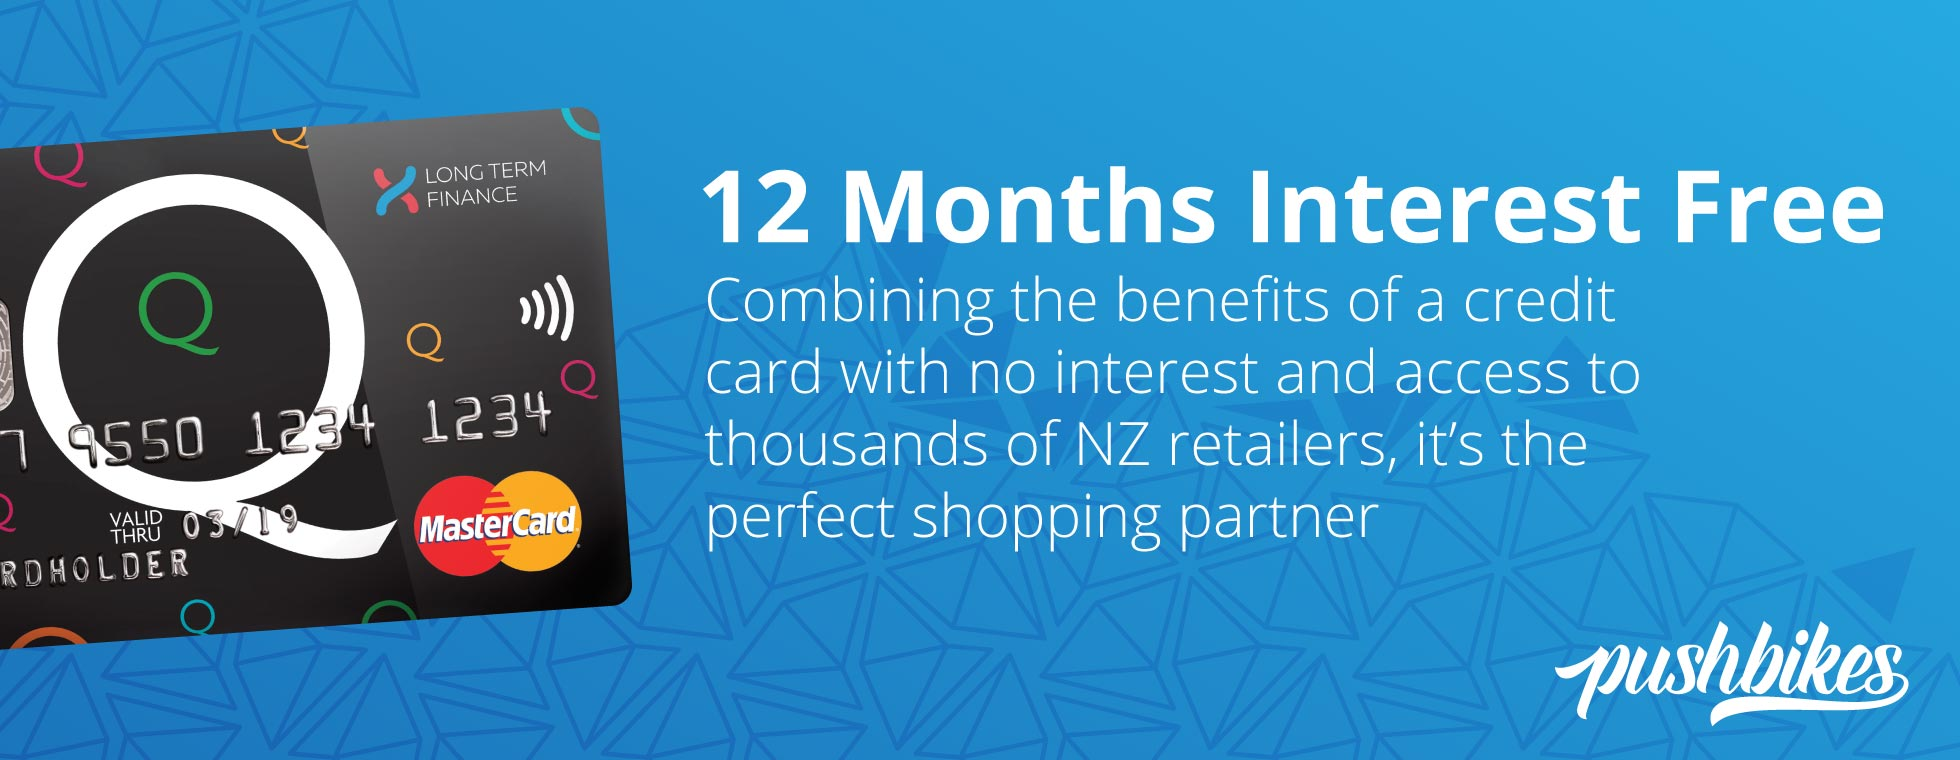 Interest Free for 12 Months